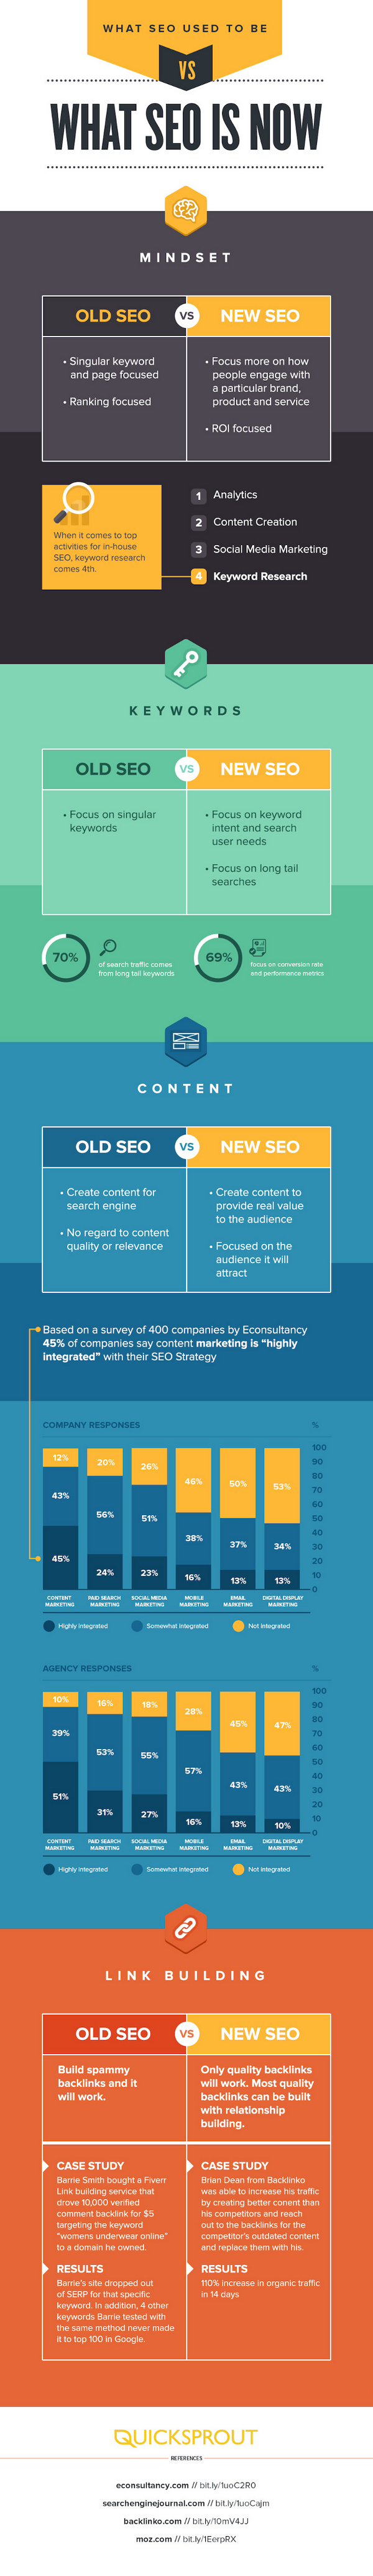 SEO-Strategies-for-2015